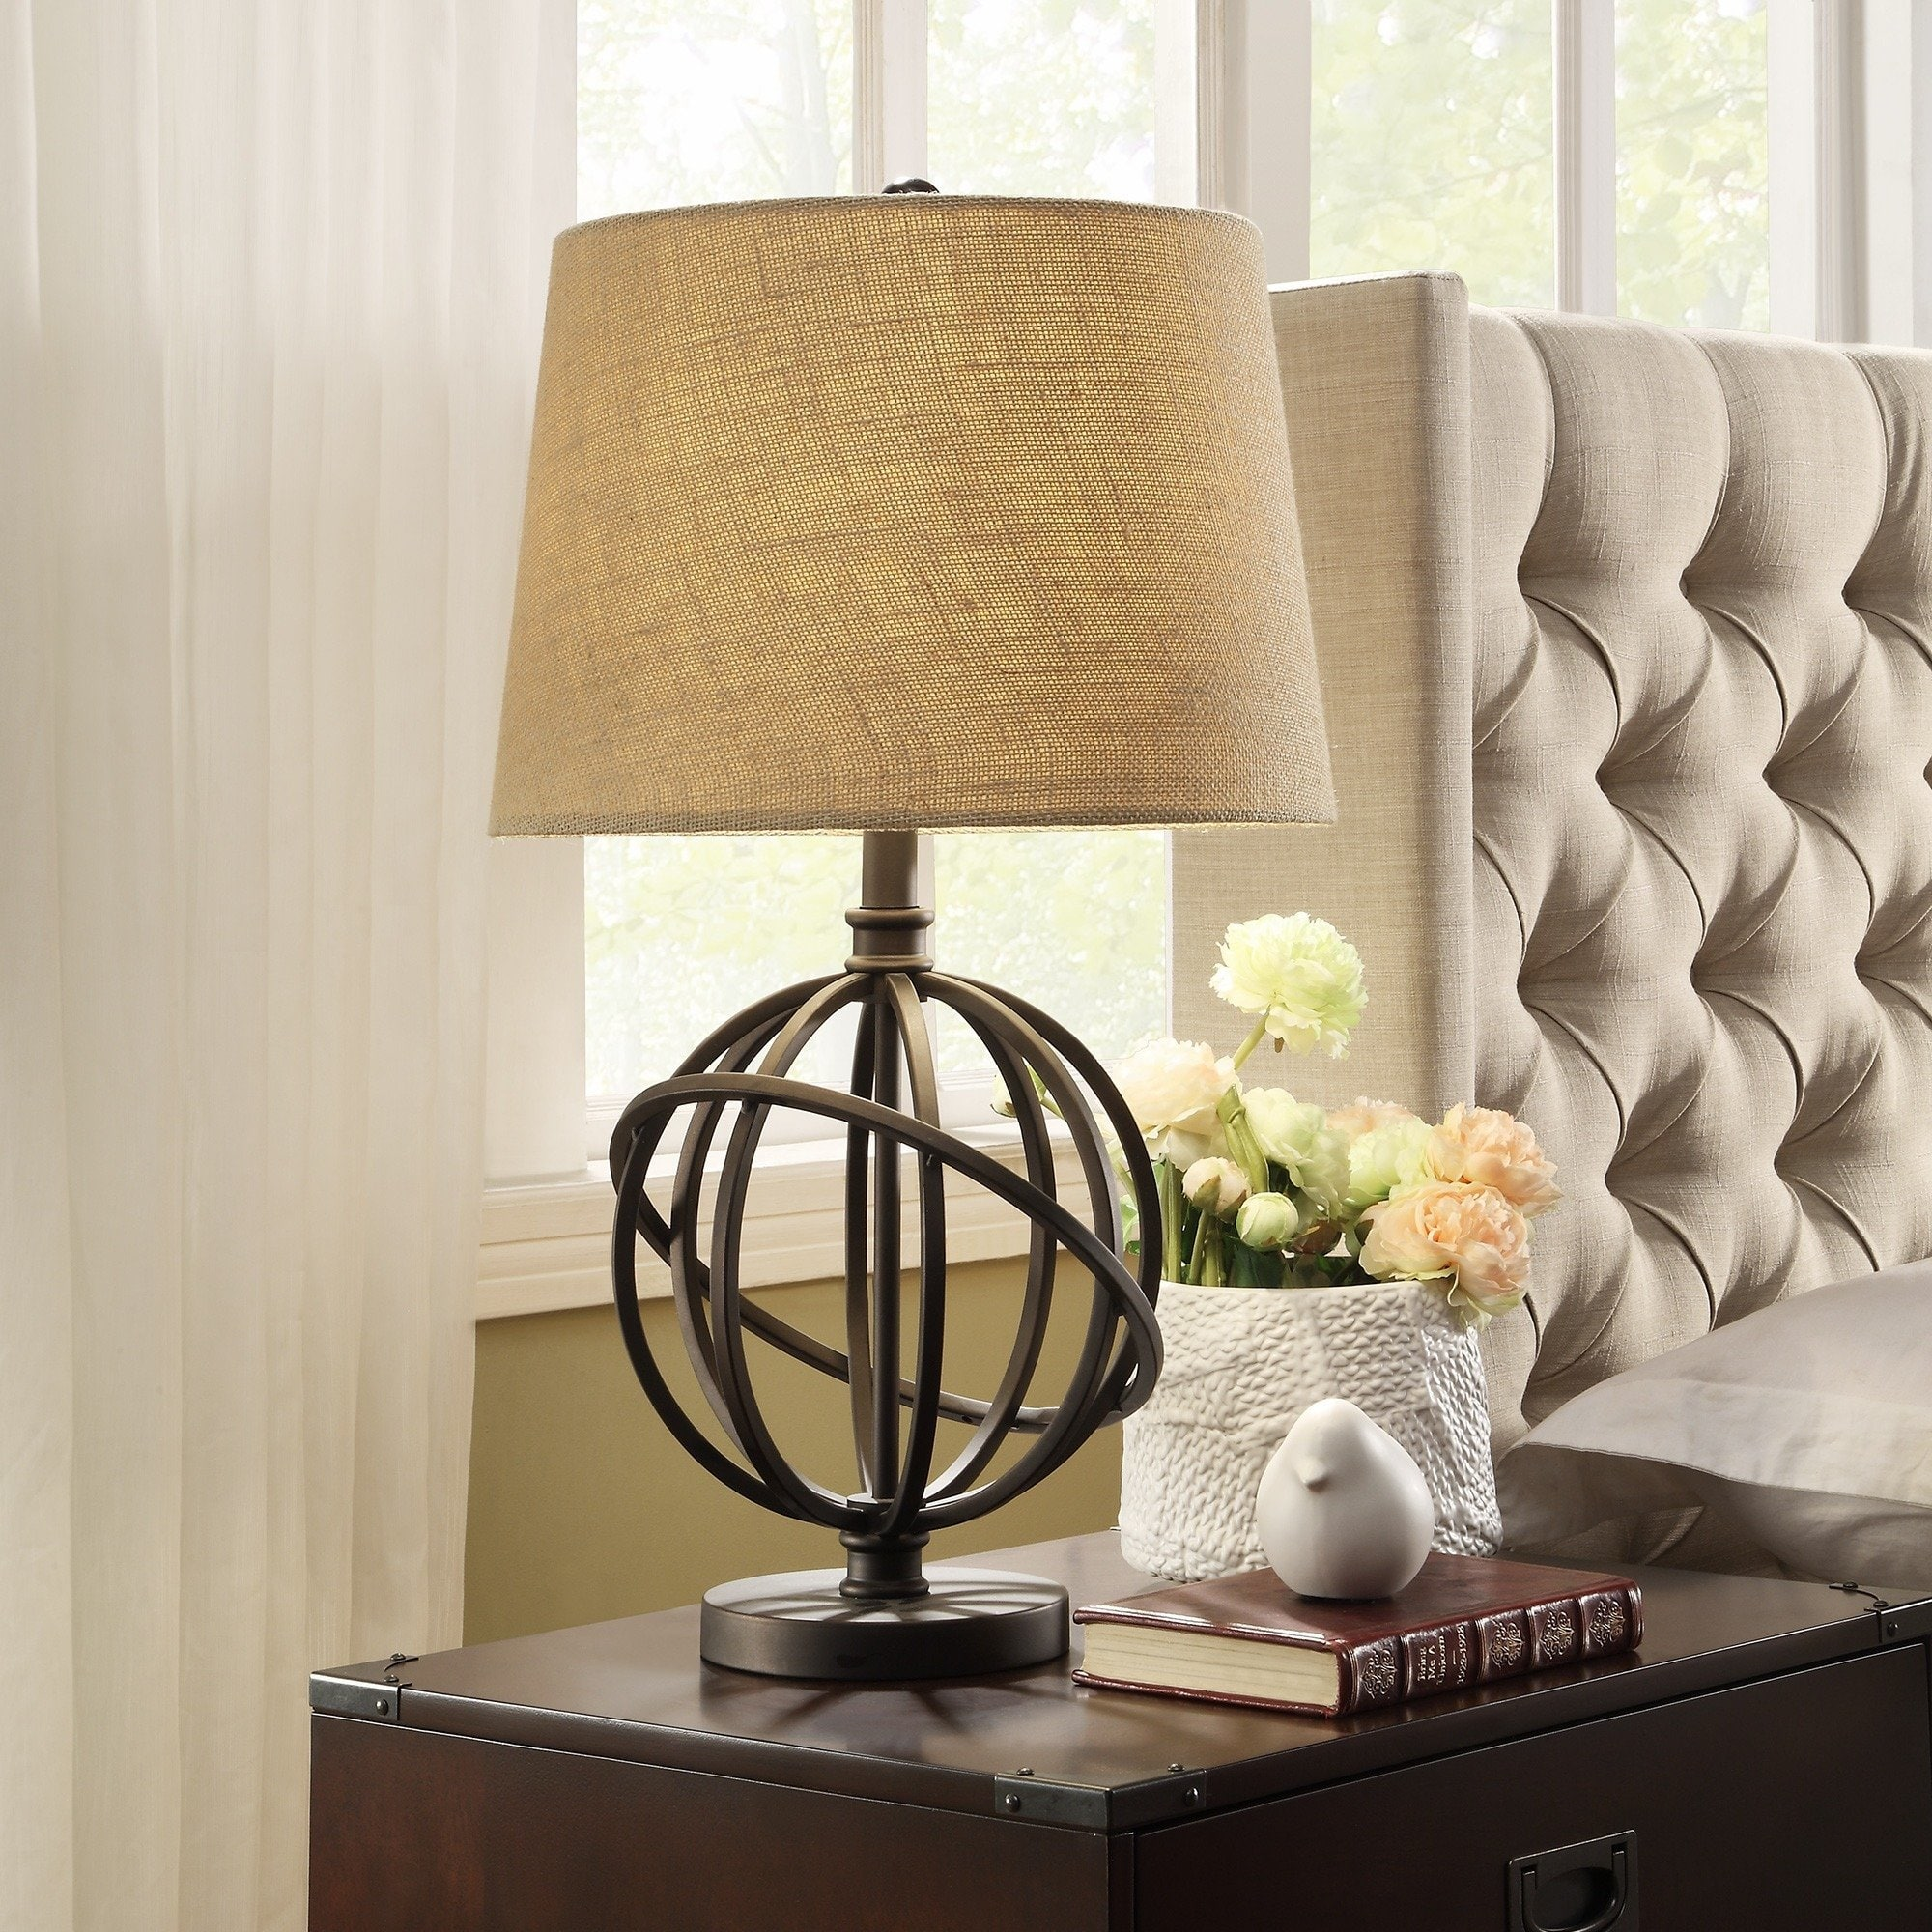 cooper antique bronze metal orbit globe light accent table lamp inspire sage green coffee round dark wood end pipe contemporary side tables turned legs ikea storage crates target